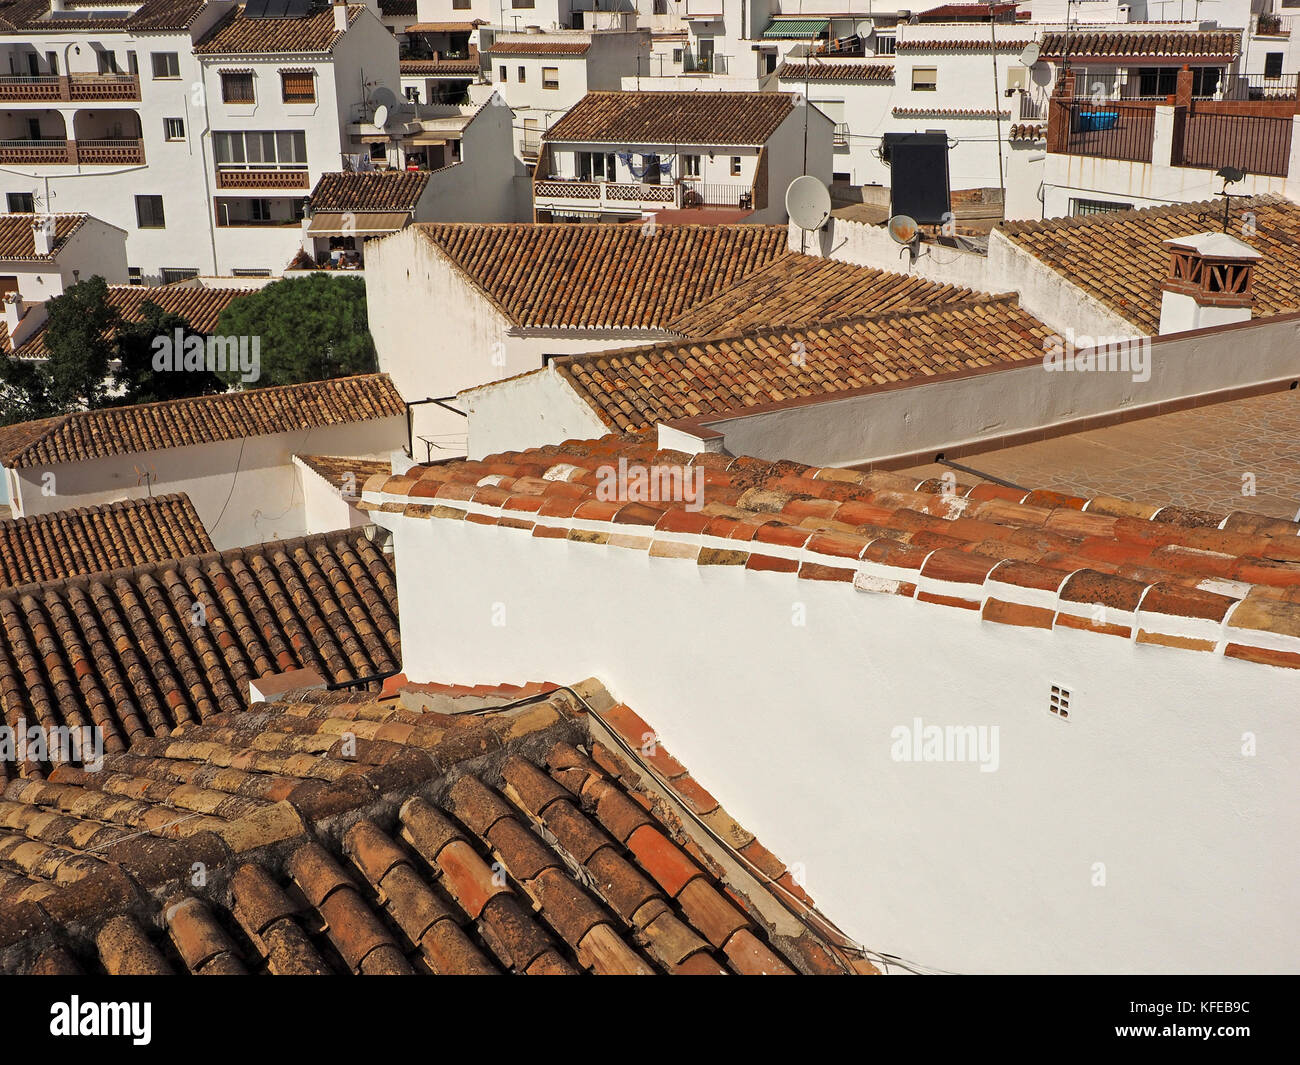 the picturesque white-painted houses in the historic hillside town of Mijas,Spain - Stock Image